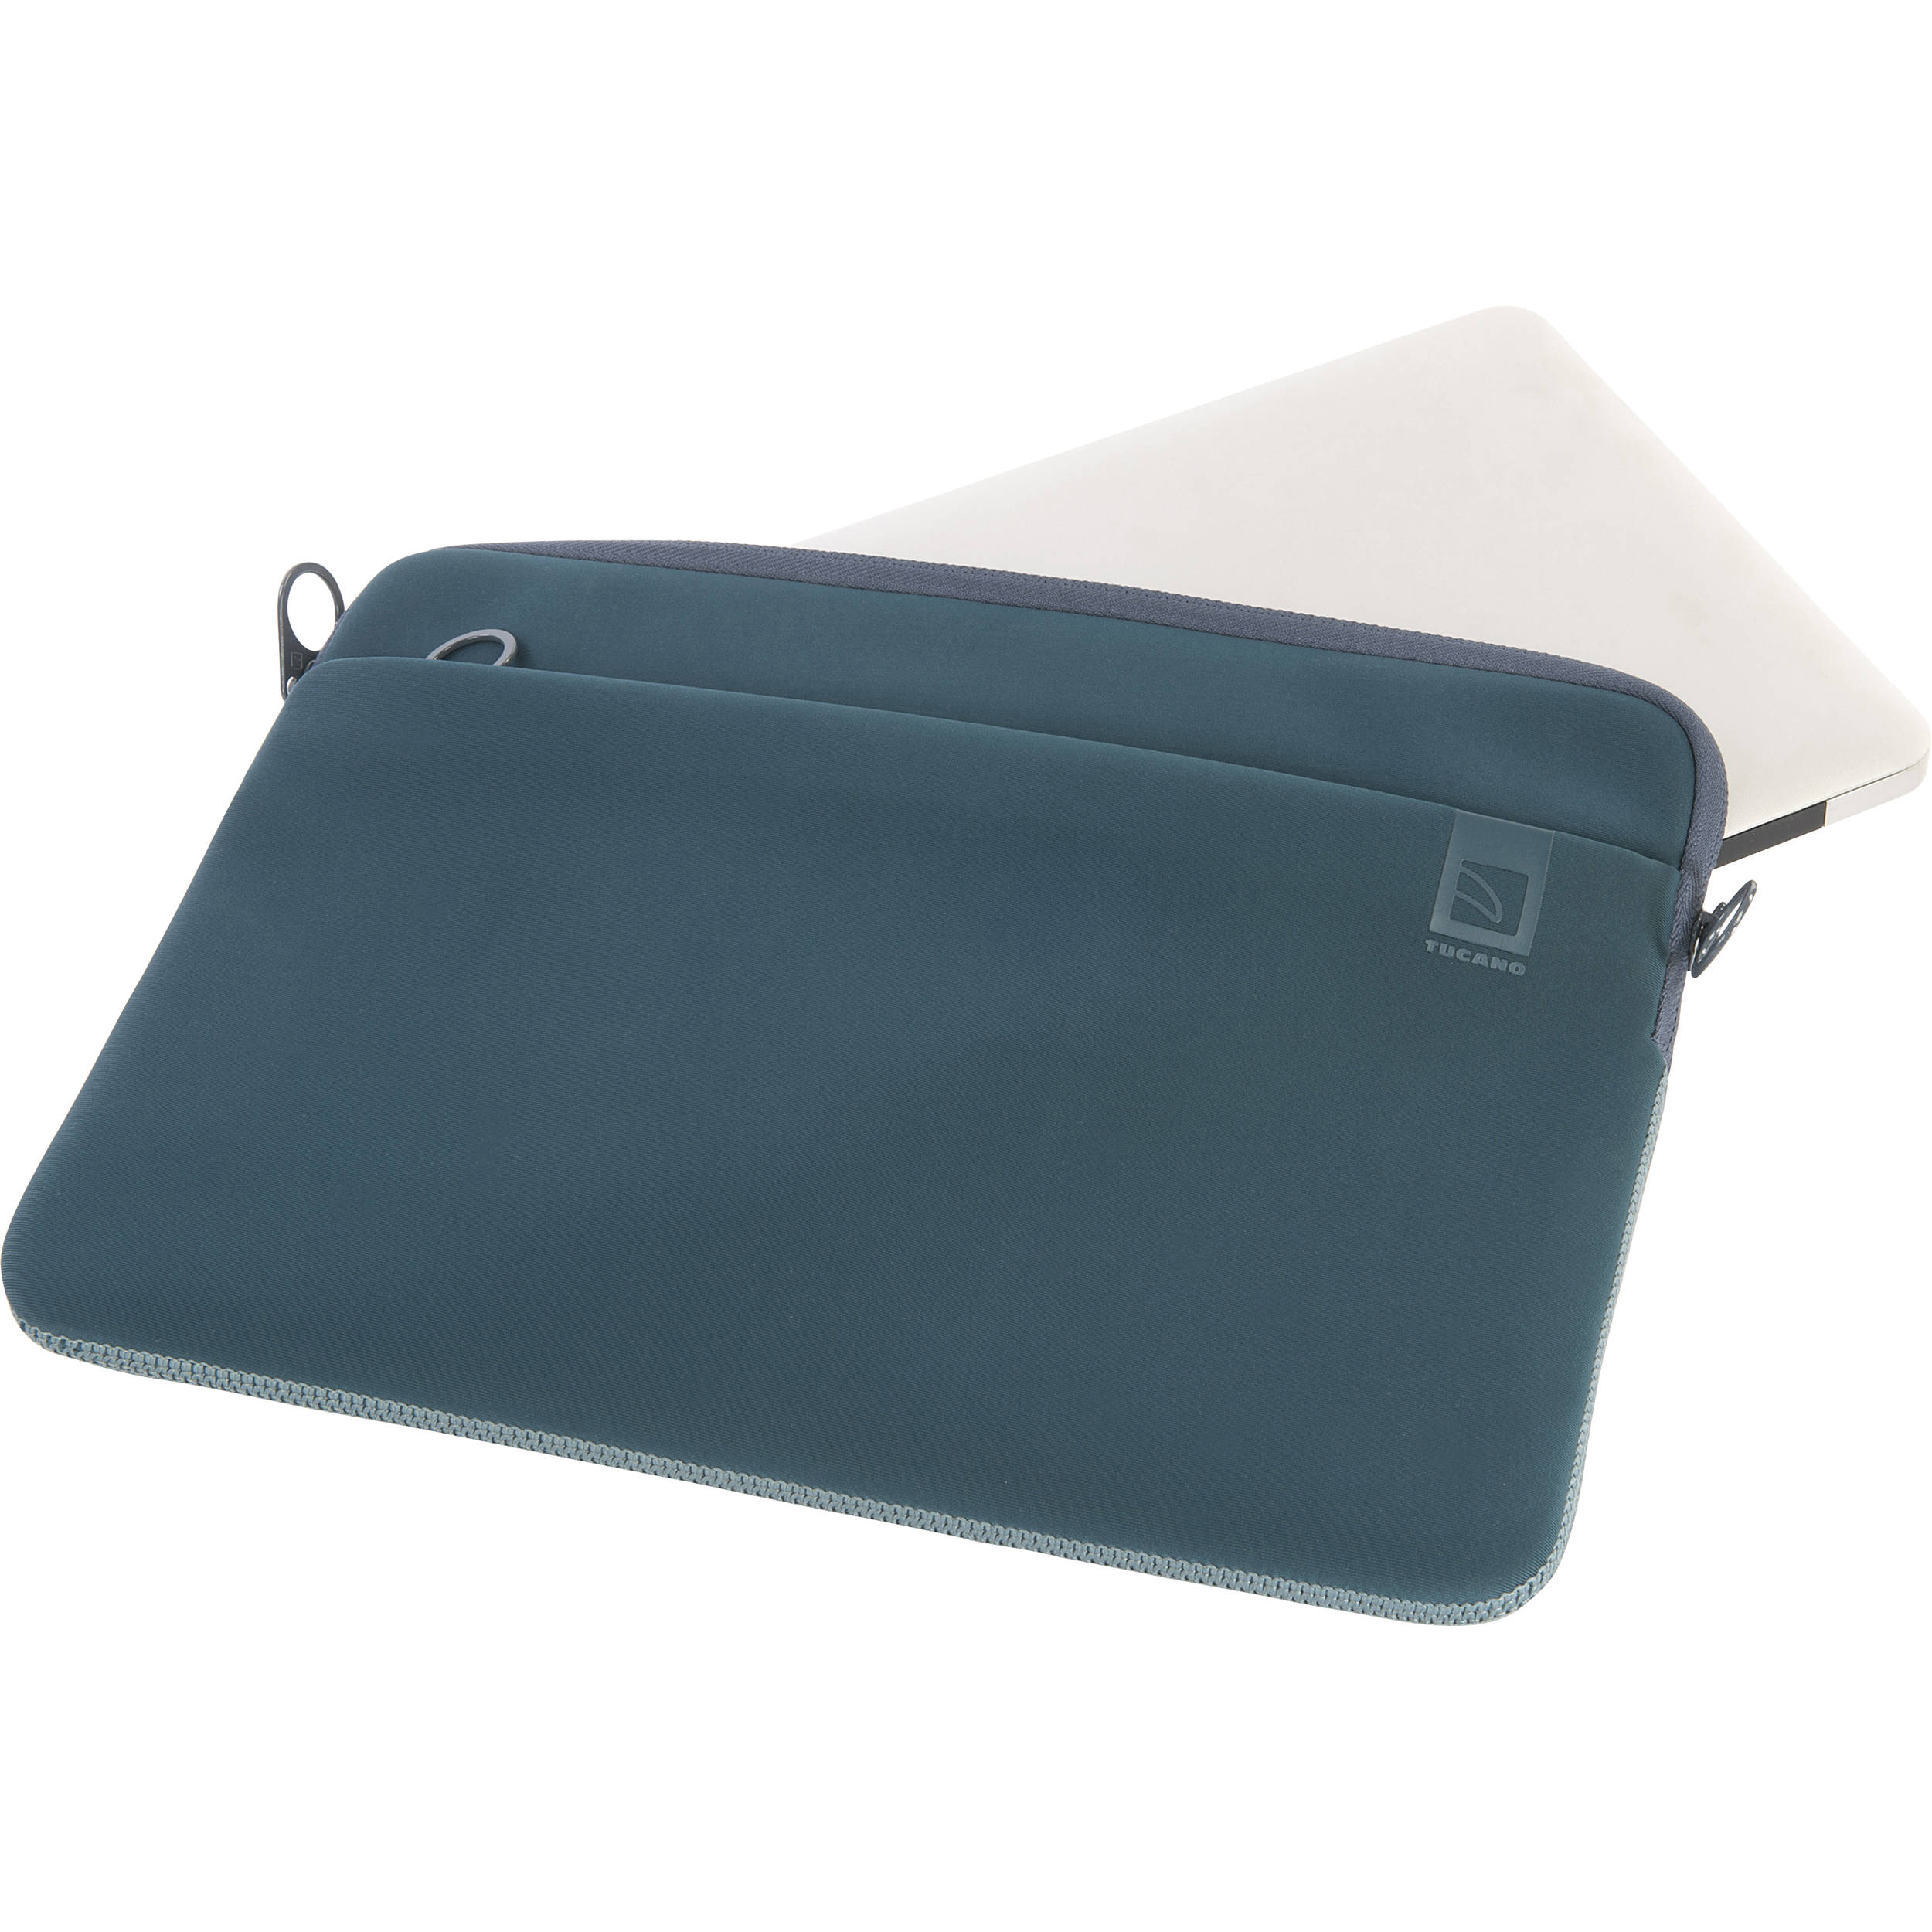 Tucano Top Neoprene Sleeve For Macbook Pro 13